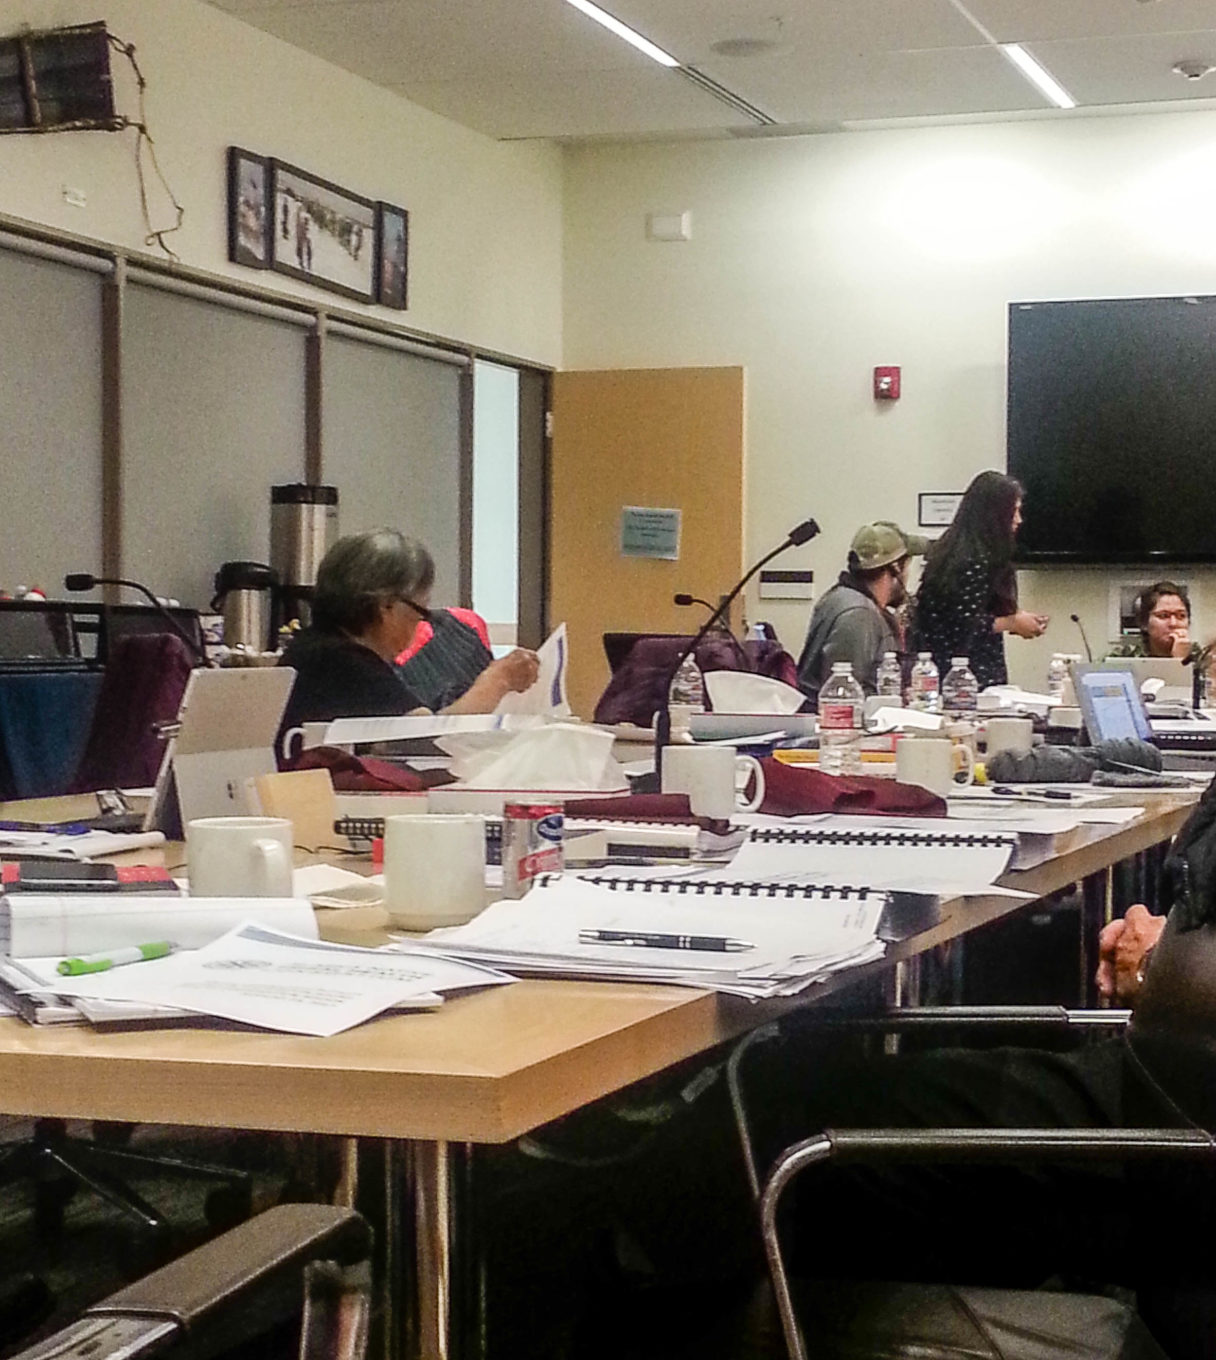 The Board room where NSHC's Board of Directors held their 47th annual meeting. Photo credit: Davis Hovey, KNOM (2017)